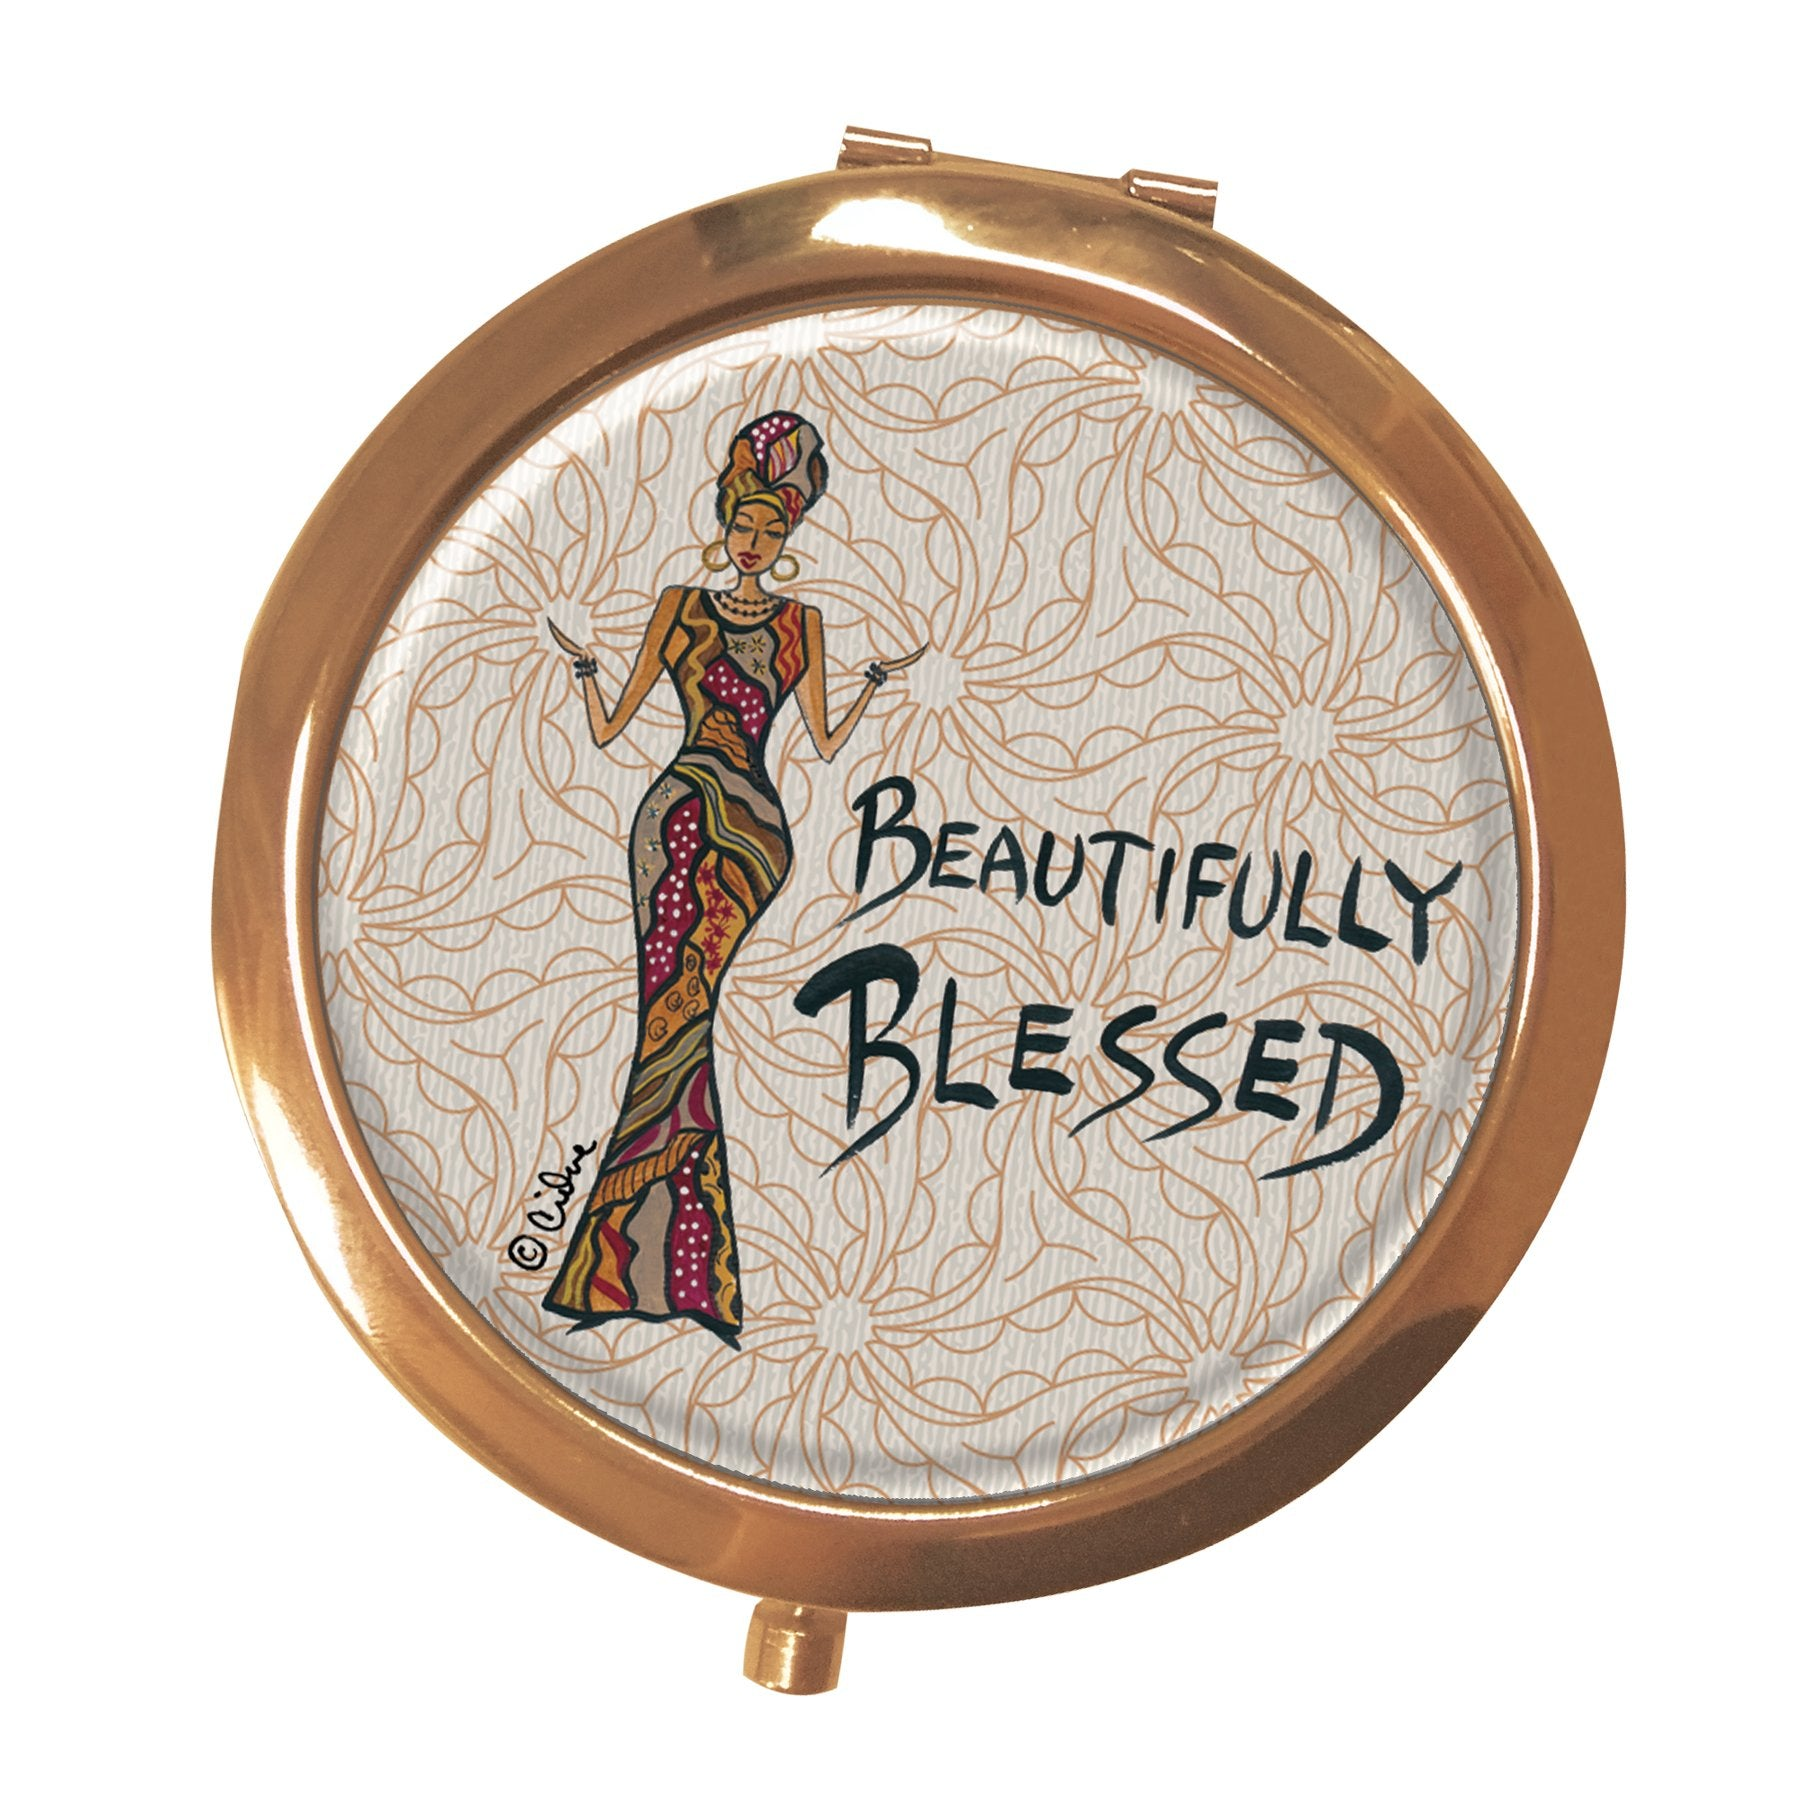 Beautifully Blessed: African American Pocket Mirror by Cidne Wallace